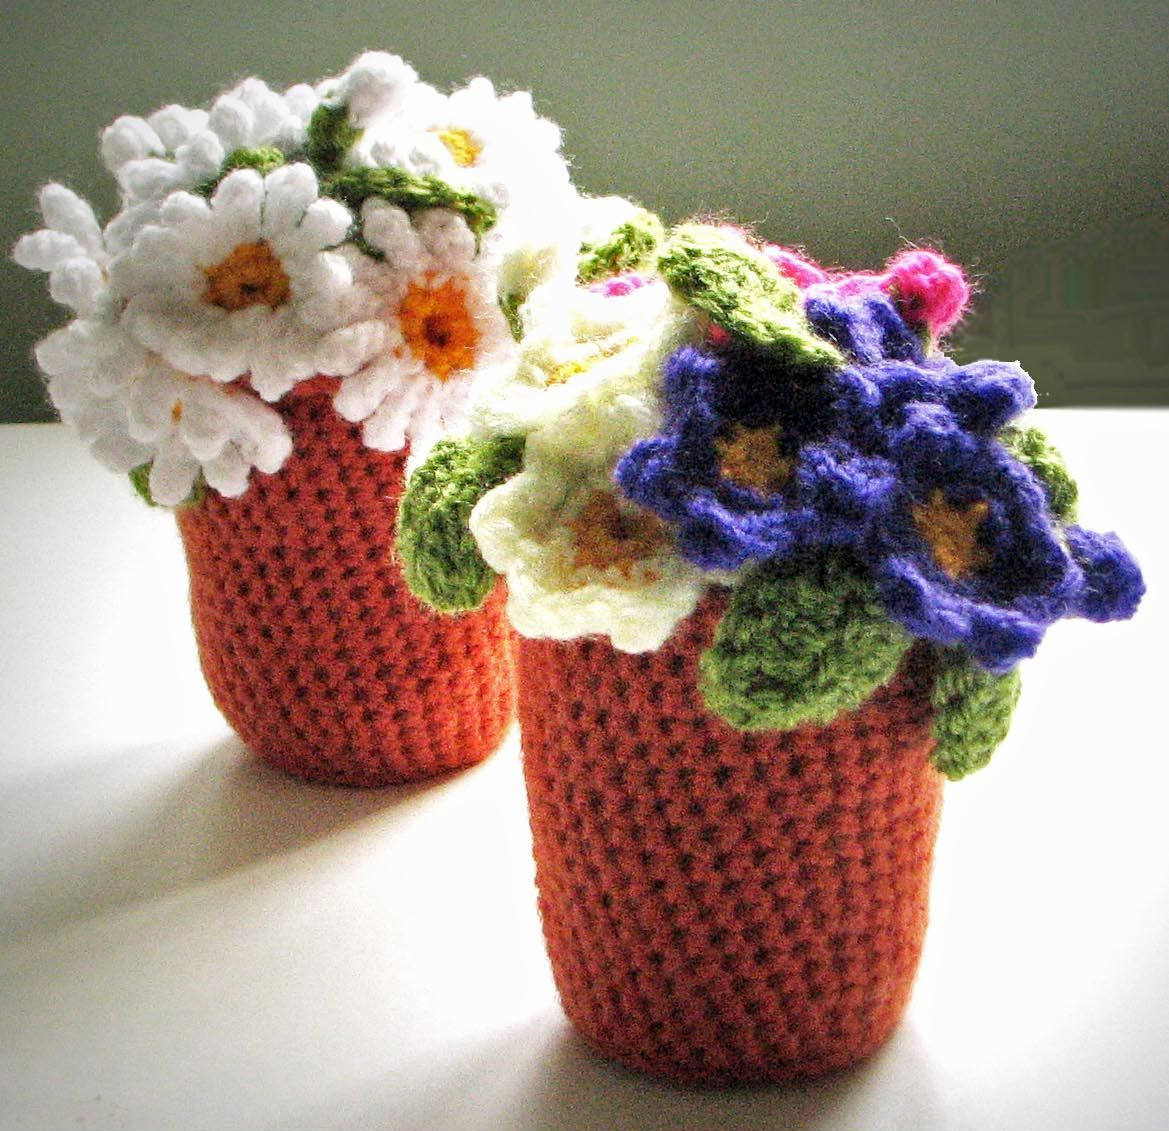 Flowerpots crochet pattern for daisy and primula primrose flowerpots crochet pattern for daisy and primula primrose flower pots pdf bankloansurffo Images